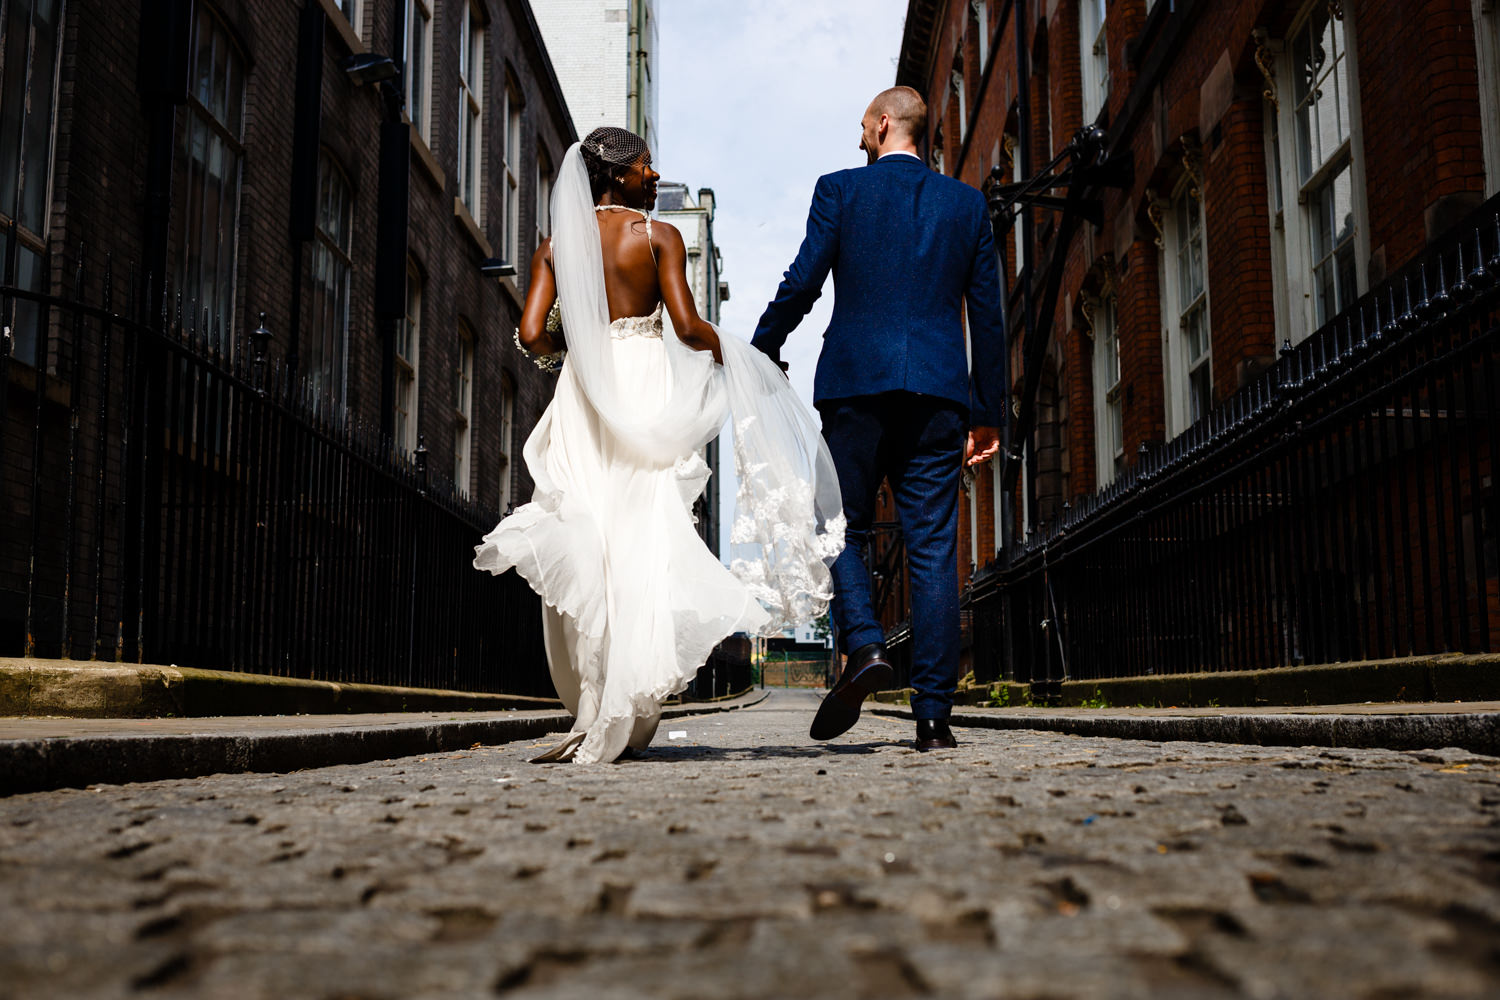 Flick and Will Liverpool Wedding Photographer-68.jpg